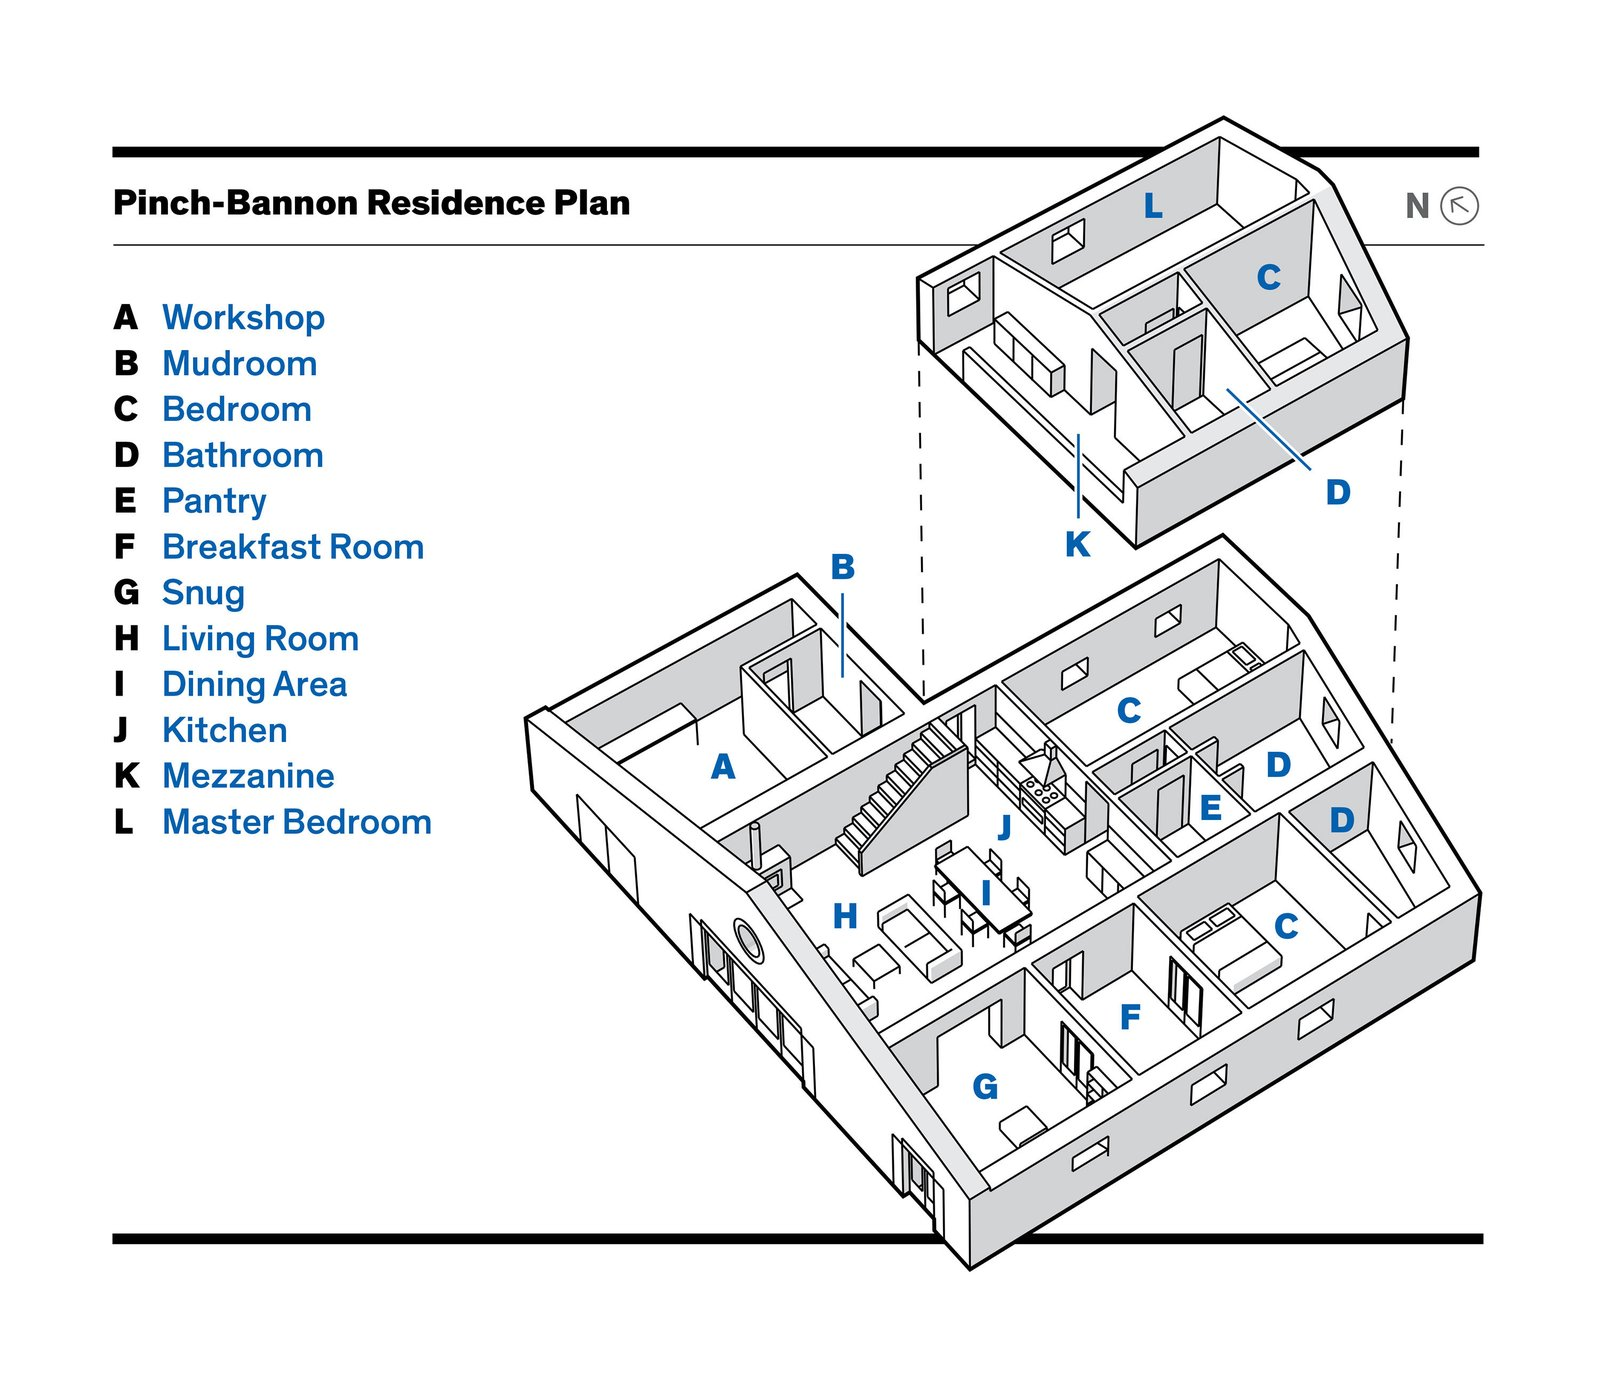 Pinch-Bannon Residence barn style house plans.